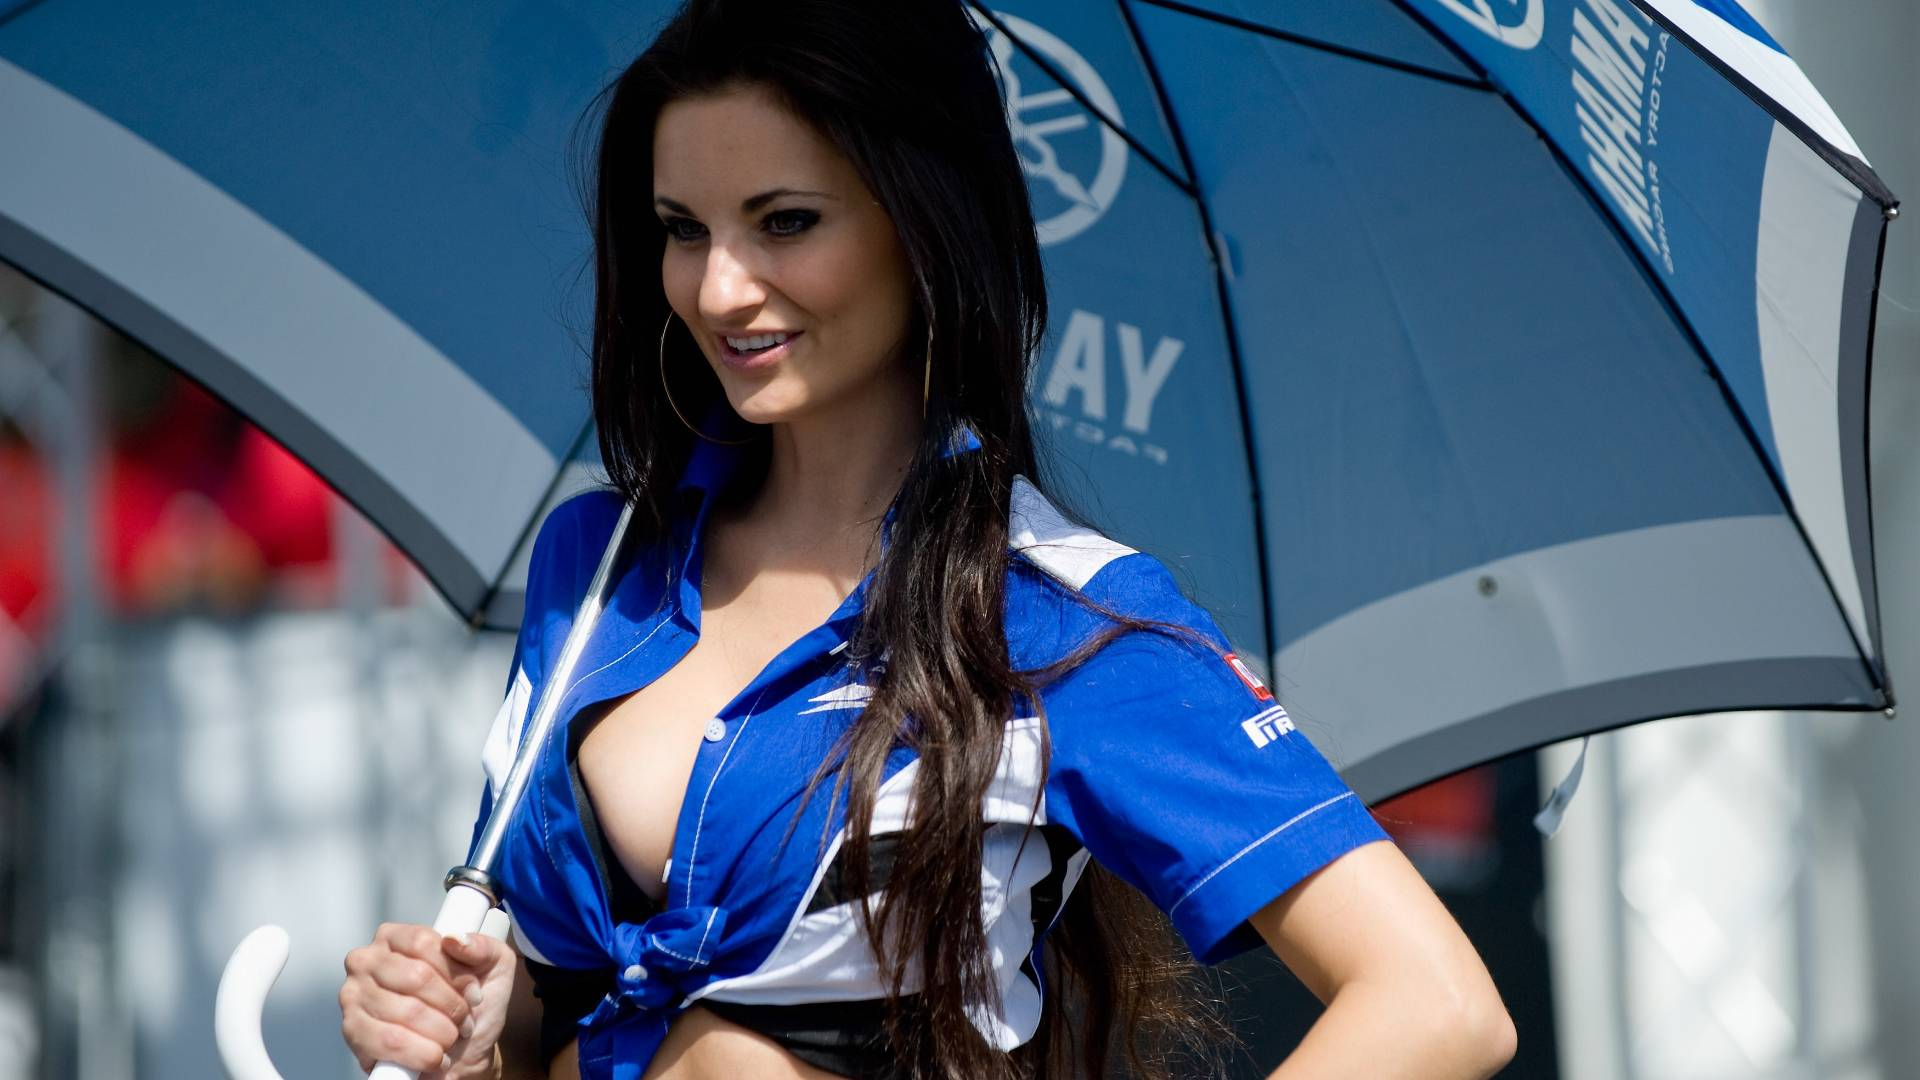 Grid girl posa antes do treino de classificao para o Mundial de Superbike, circuito de Brno, na Repblica Tcheca